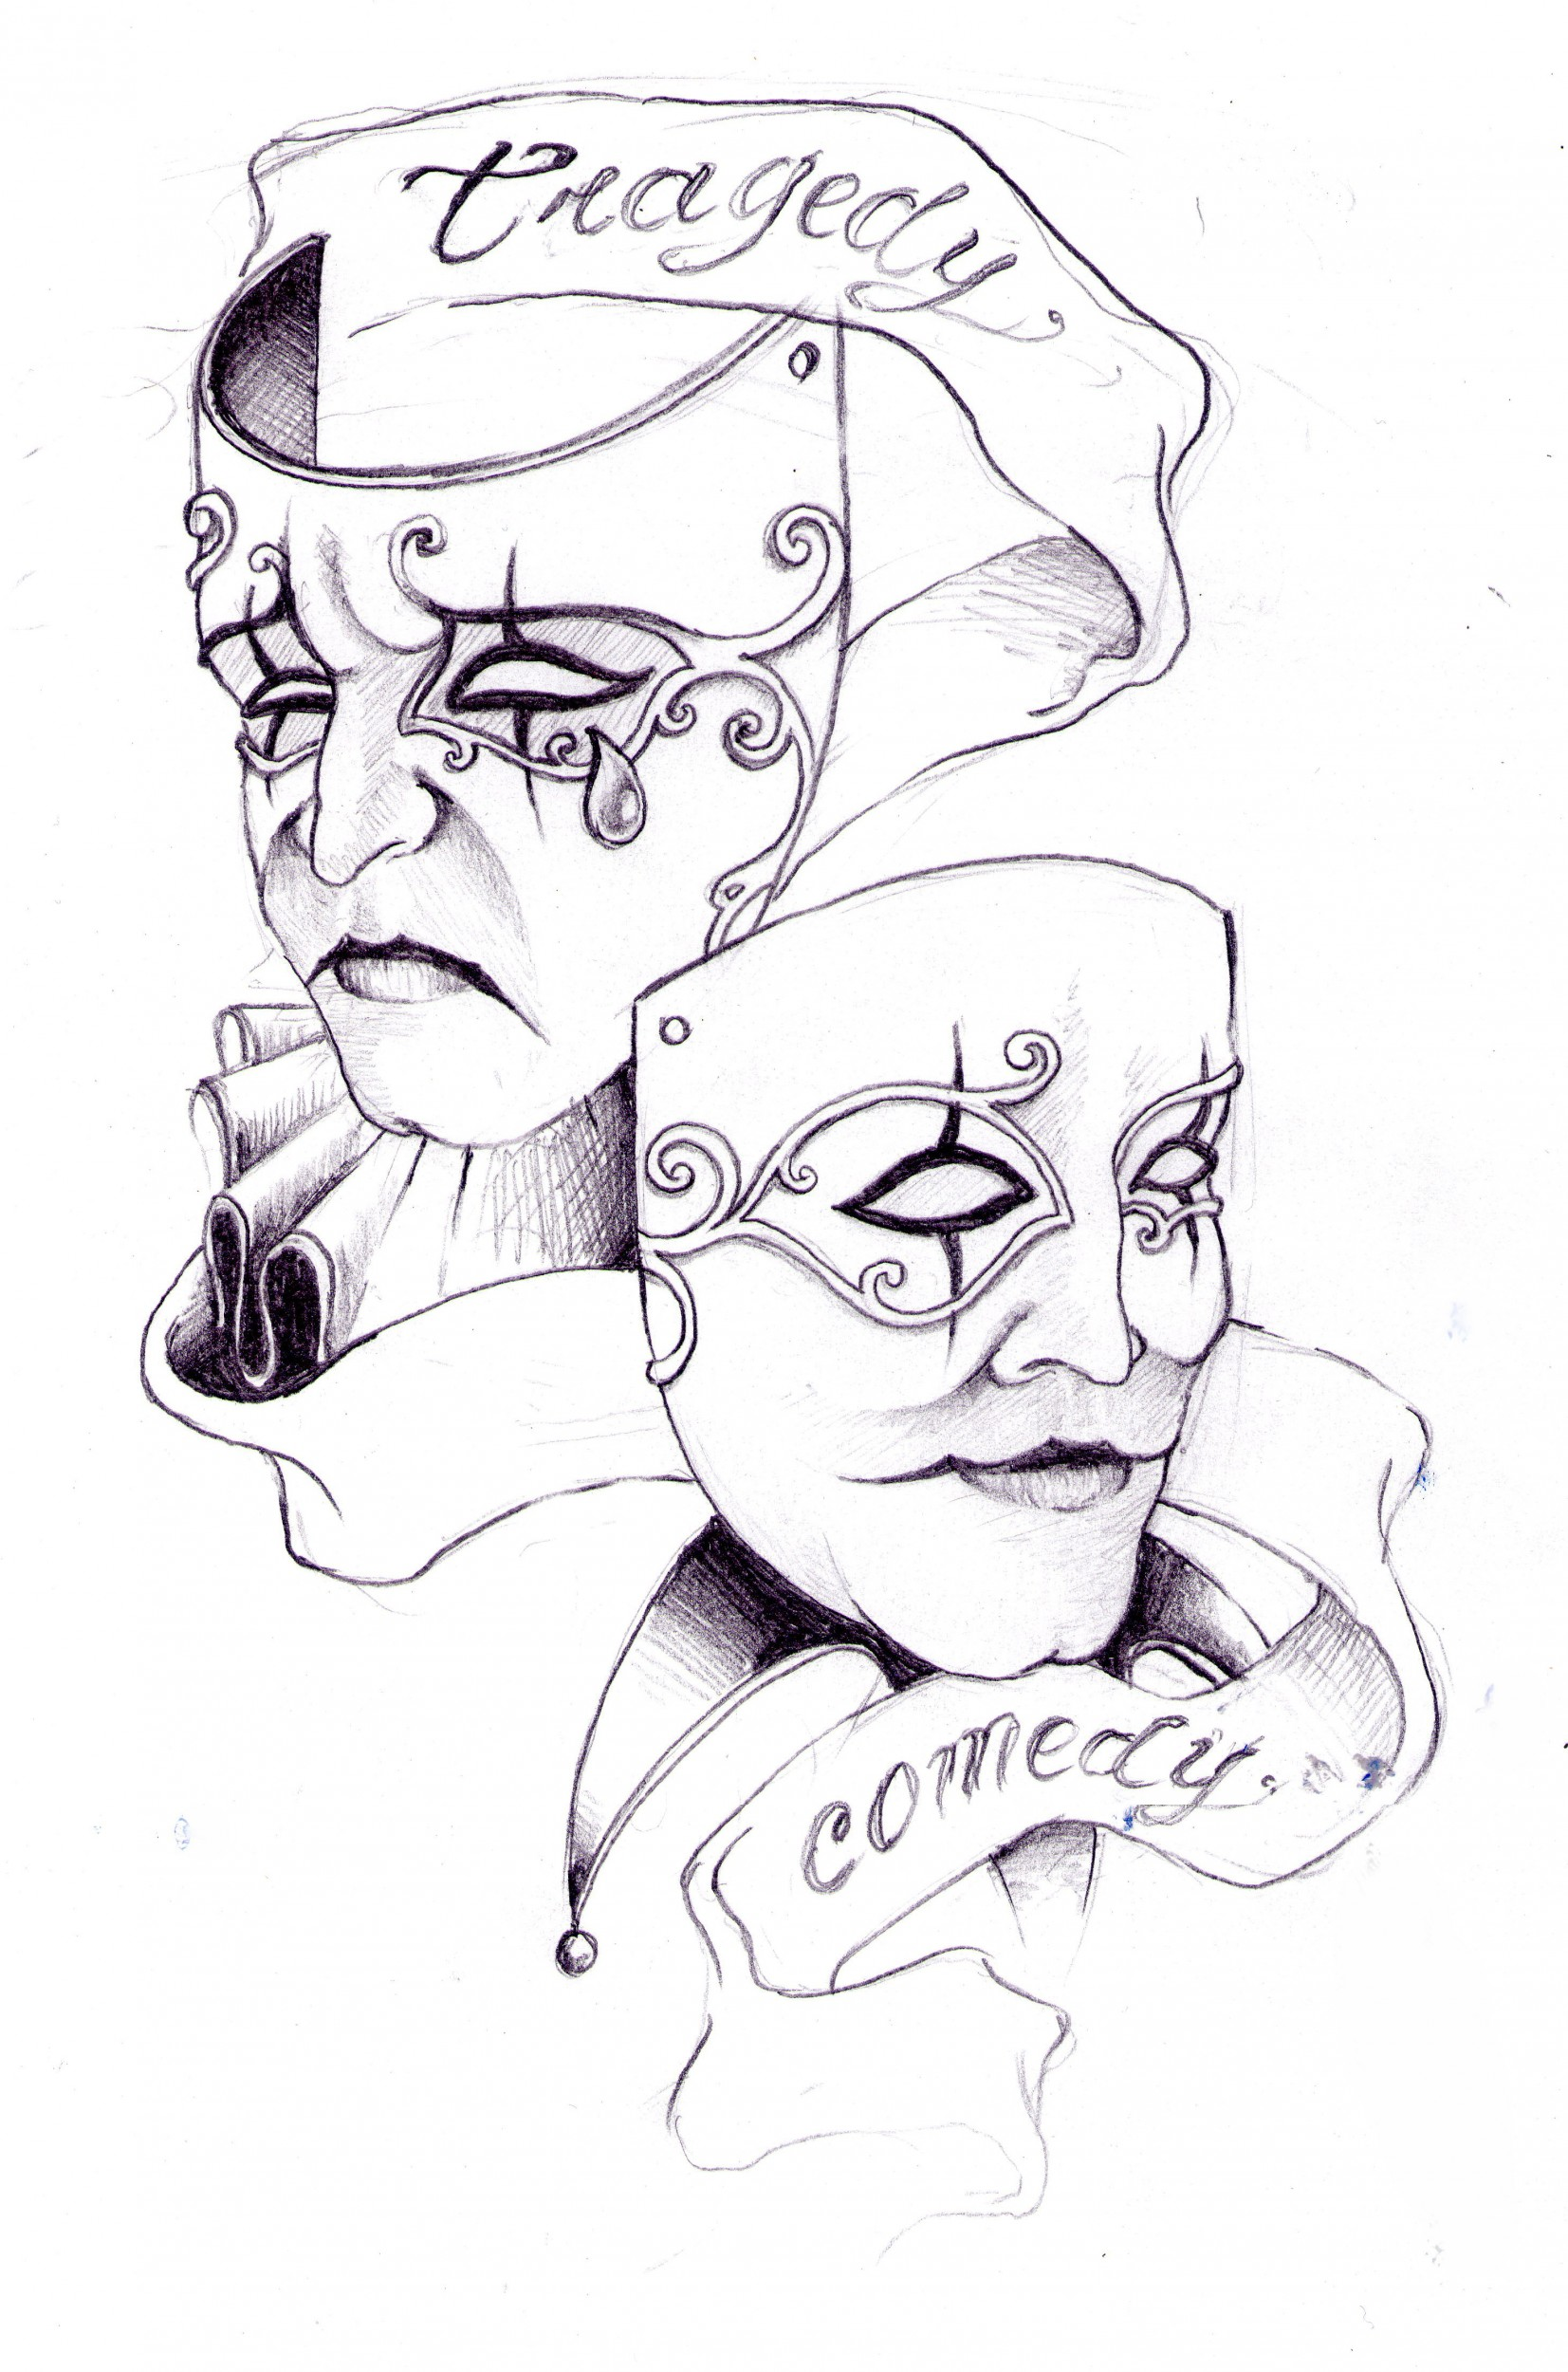 Drama Masks Tattoo Designs | Tattoobite.com